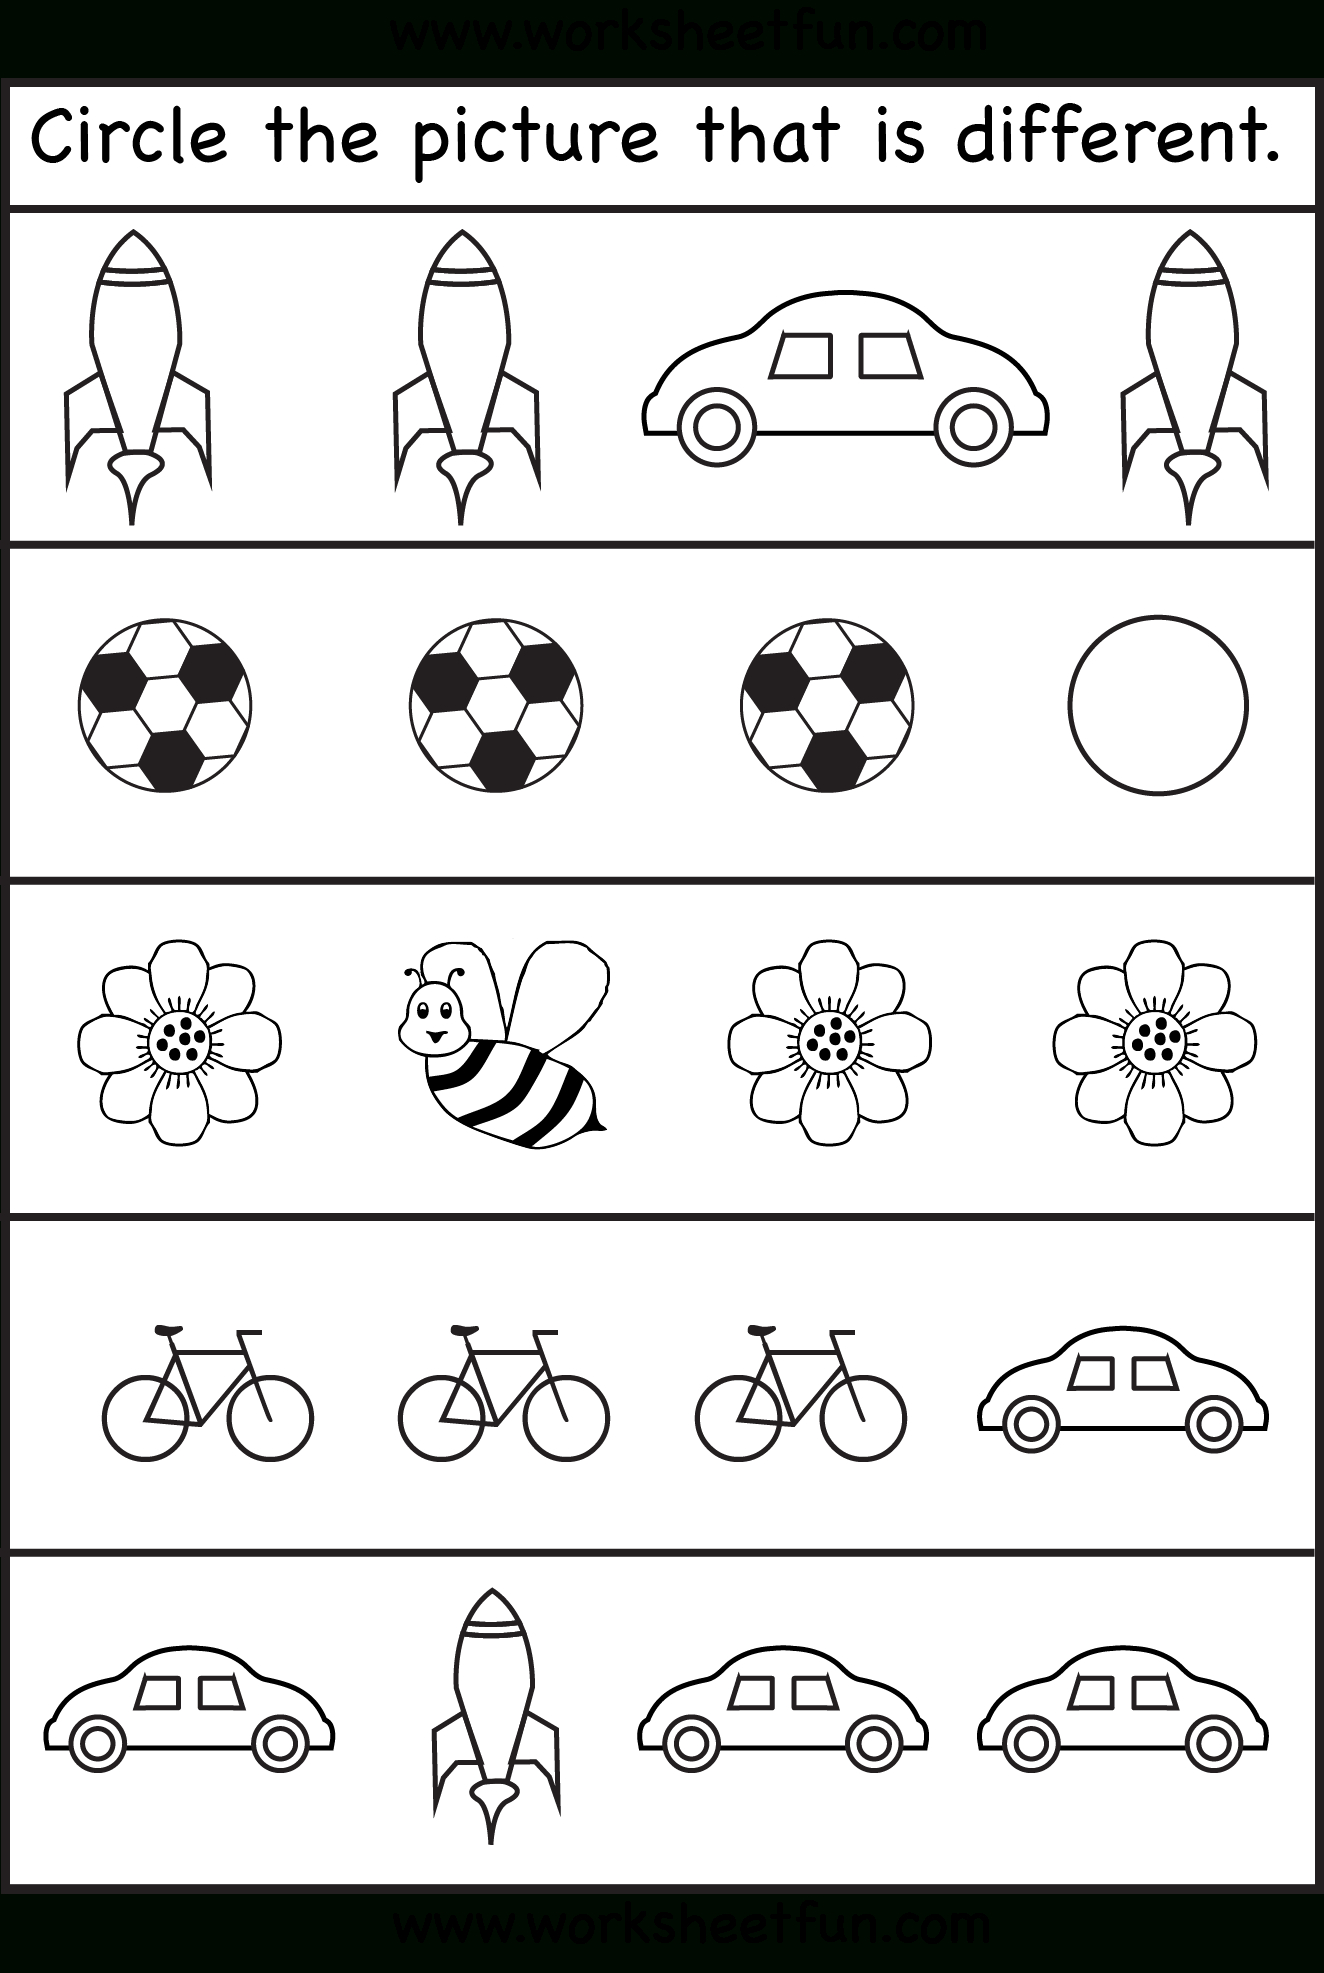 Same Or Different Worksheets For Toddler   Kids Worksheets Printable - Free Printable Worksheets For 3 Year Olds